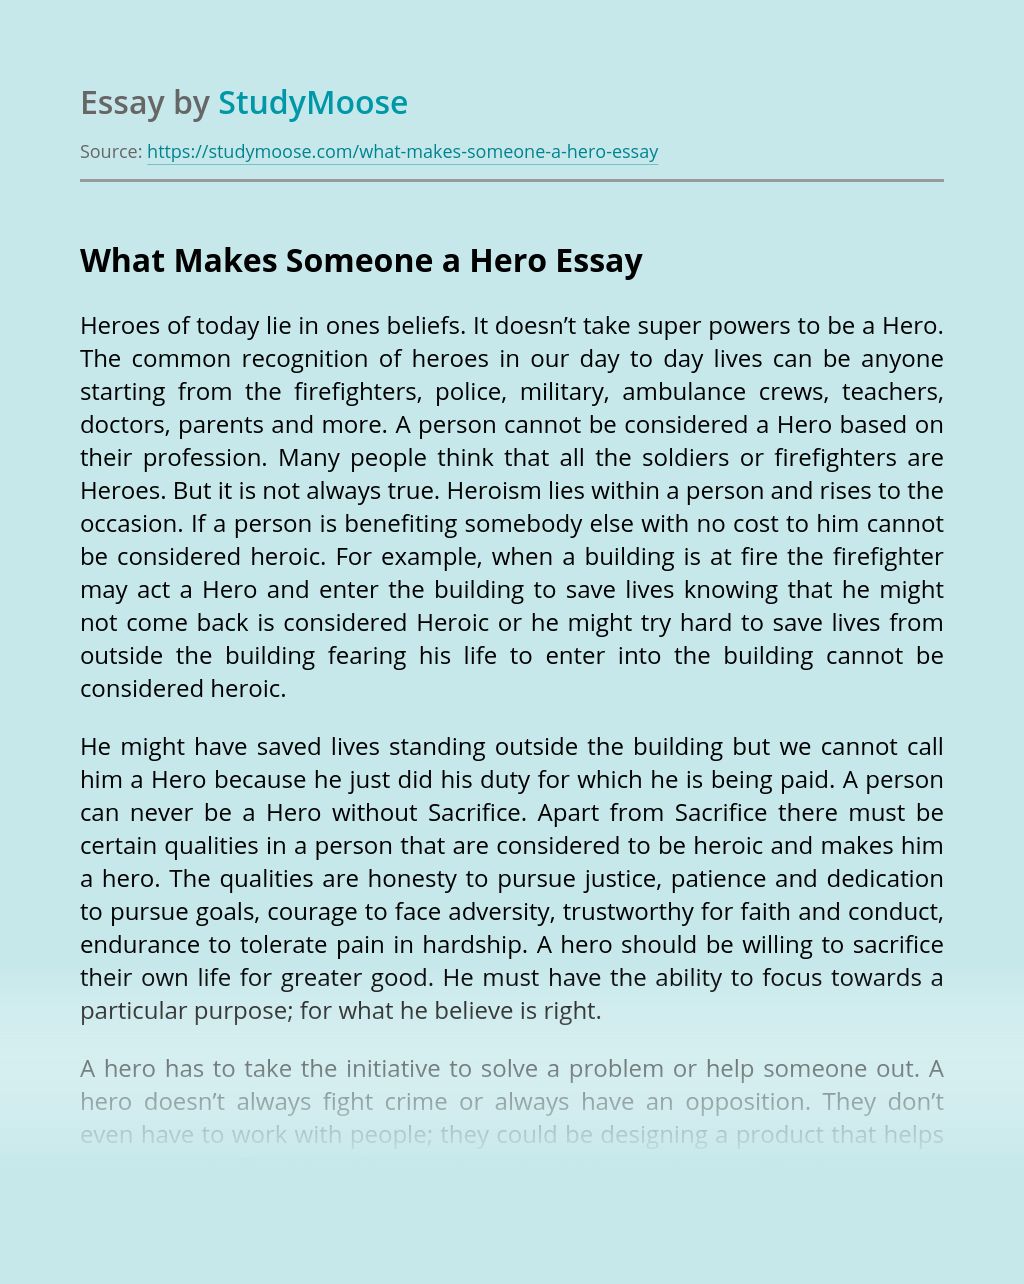 What Makes Someone a Hero